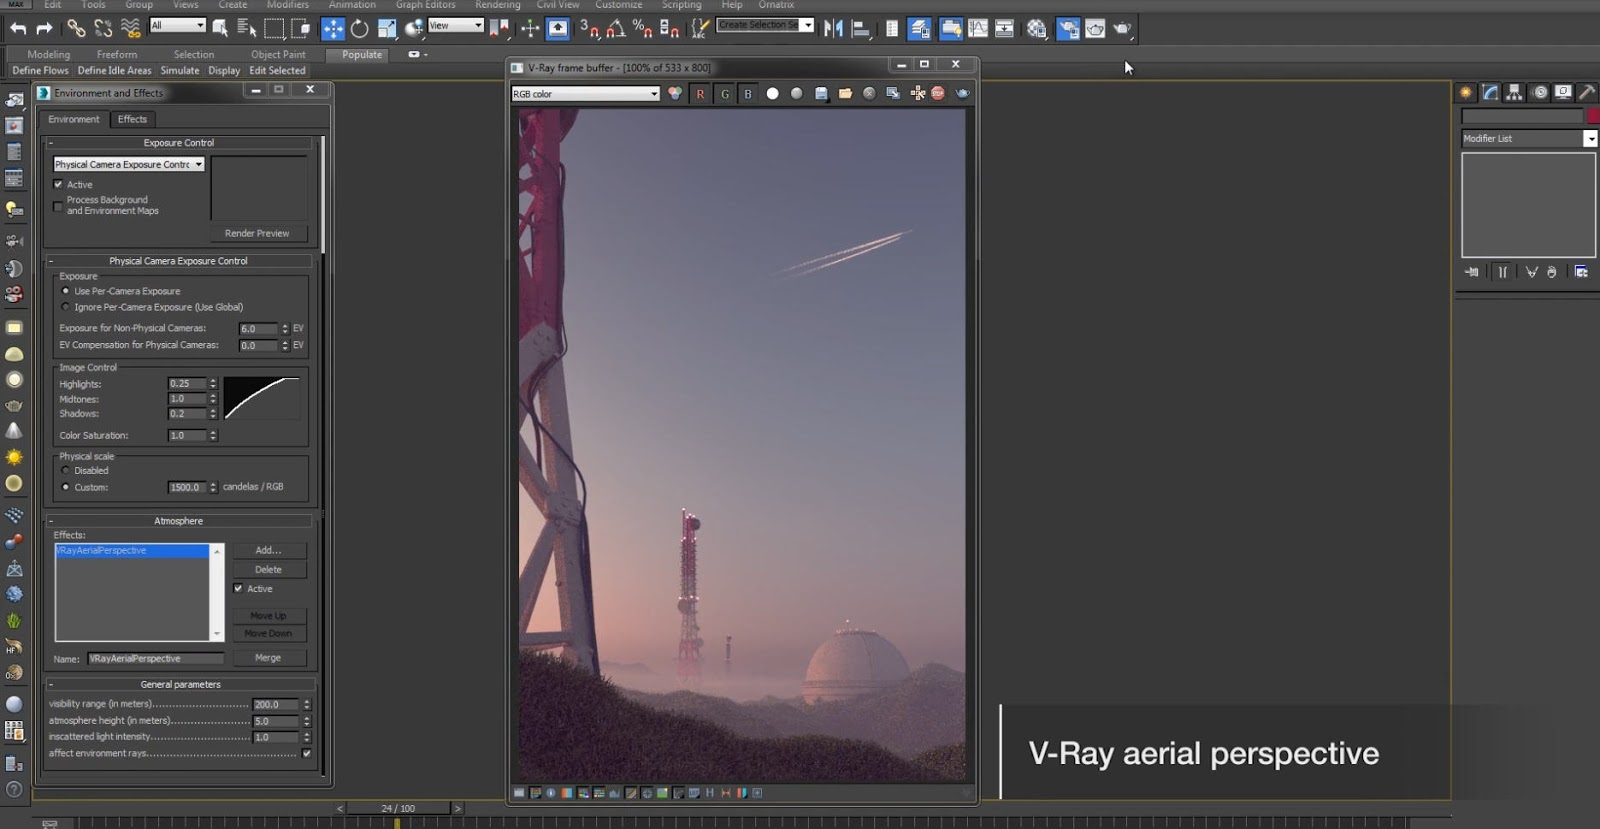 Vray 3ds Max 2012 Free Download With Crack 2016 - Torrent - lostmirror